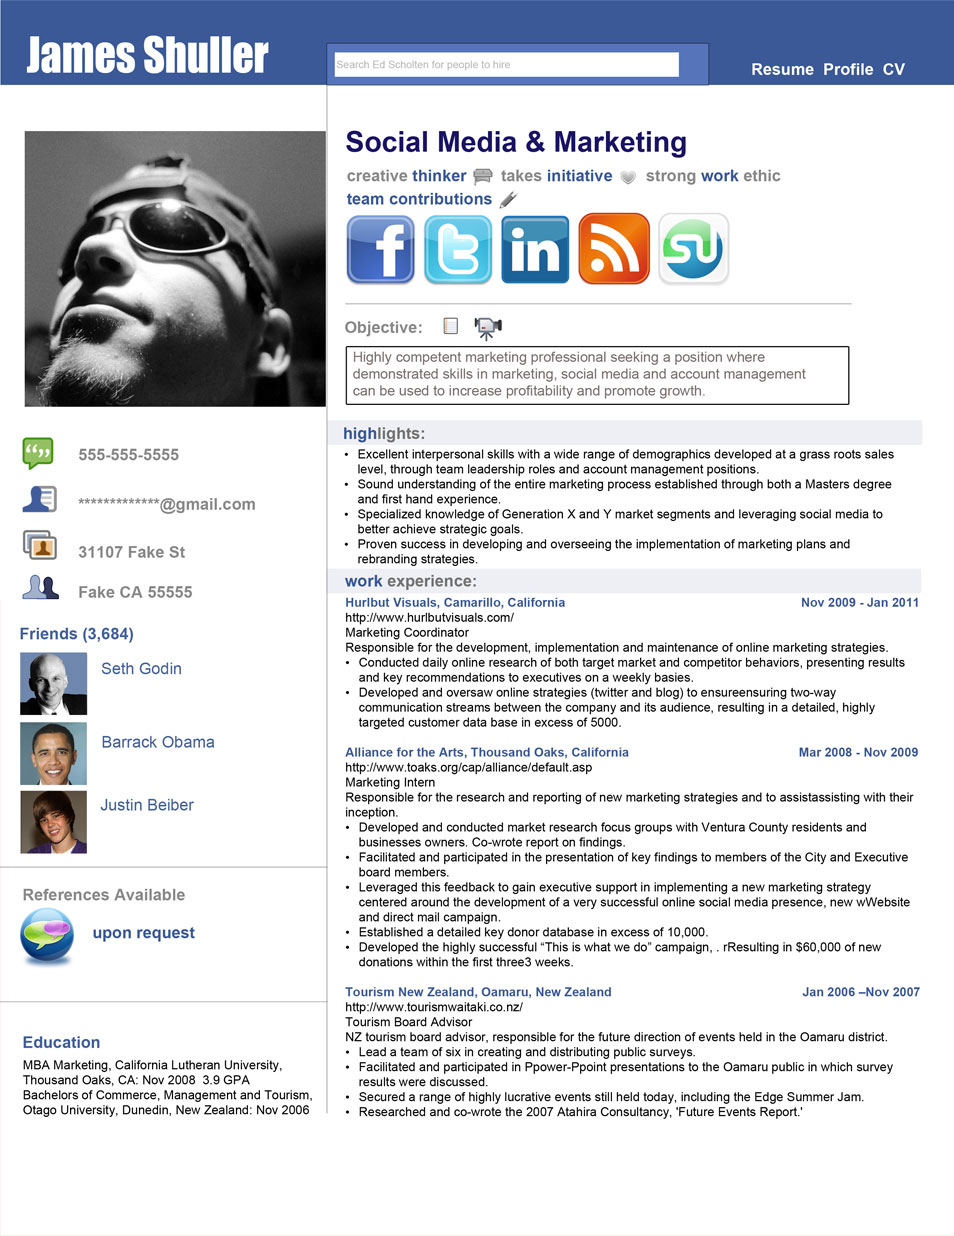 Opposenewapstandardsus  Nice  Creative Cvresume Design Inspiration With Lovable Resume  Social Network Adv With Breathtaking Fill In Resume Online Free Also Words To Use In Resumes In Addition Warehouse Supervisor Resume Samples And Curriculum Vitae Versus Resume As Well As Head Teller Resume Additionally Manicurist Resume From Cssauthorcom With Opposenewapstandardsus  Lovable  Creative Cvresume Design Inspiration With Breathtaking Resume  Social Network Adv And Nice Fill In Resume Online Free Also Words To Use In Resumes In Addition Warehouse Supervisor Resume Samples From Cssauthorcom